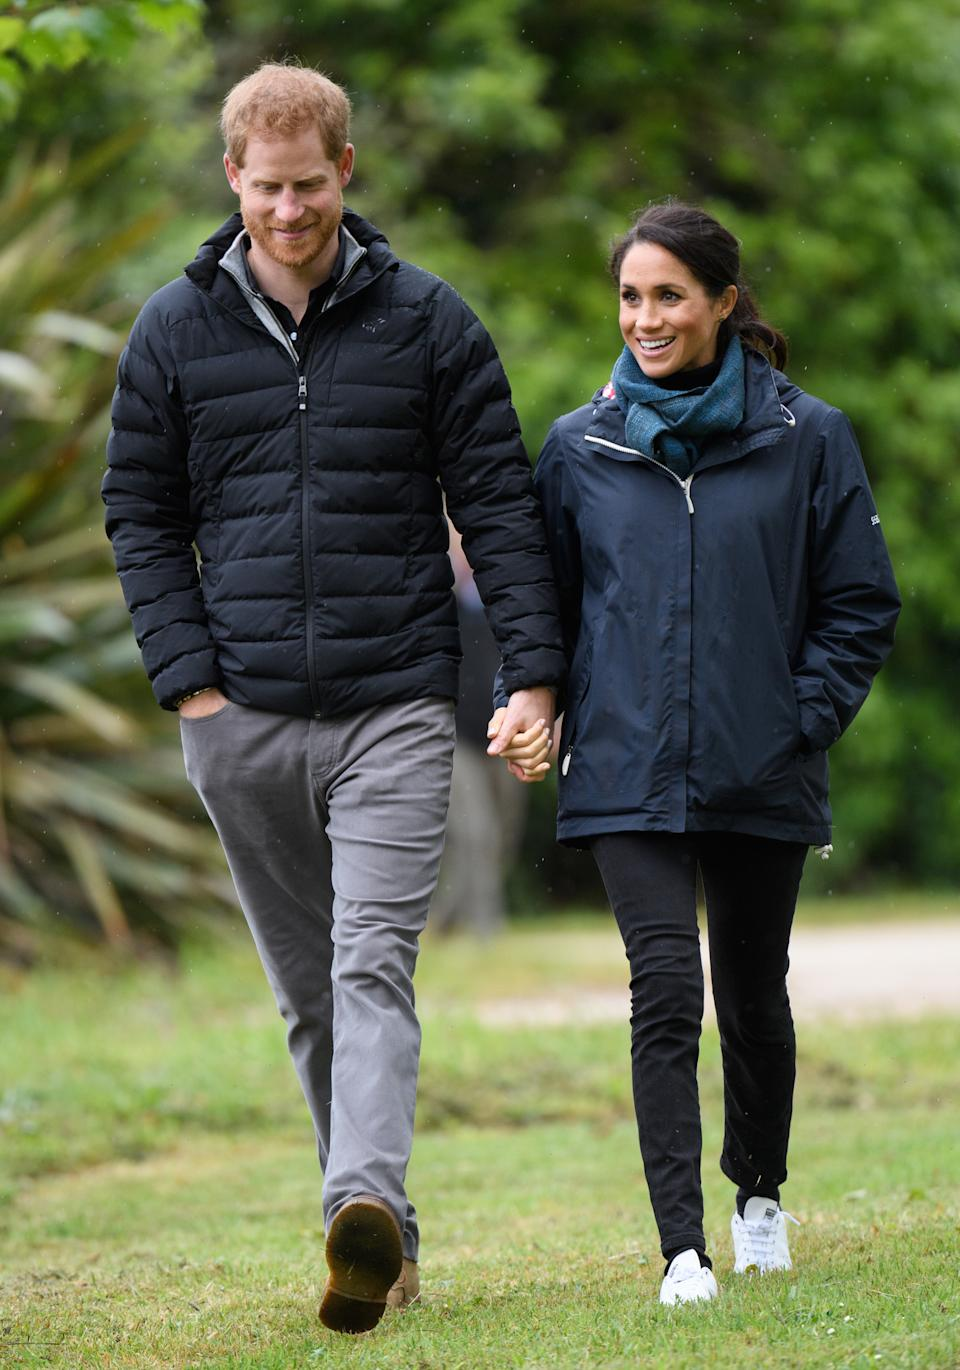 The Duchess of Sussex wore the vegan pair created Stella McCartney for the brand during the royal tour of New Zealand in 2018 (Getty Images)